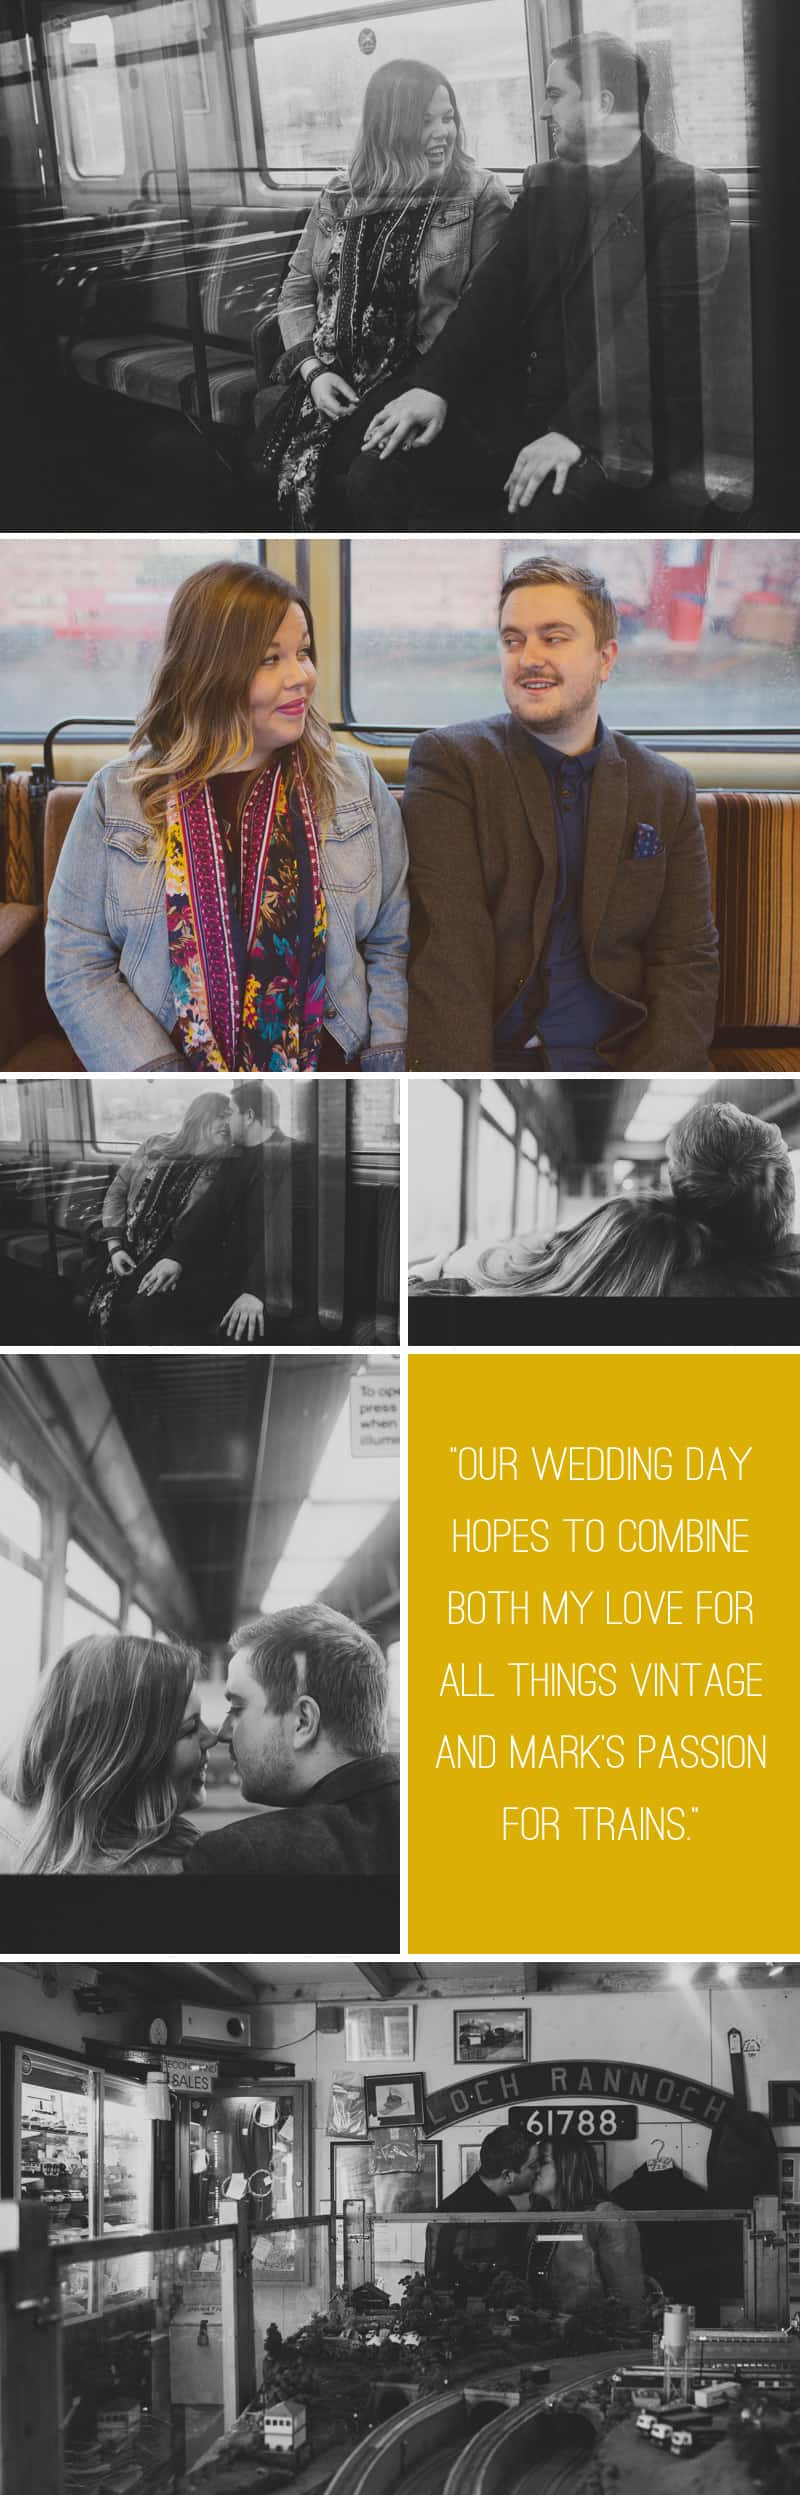 Vintage Train Engagement 2